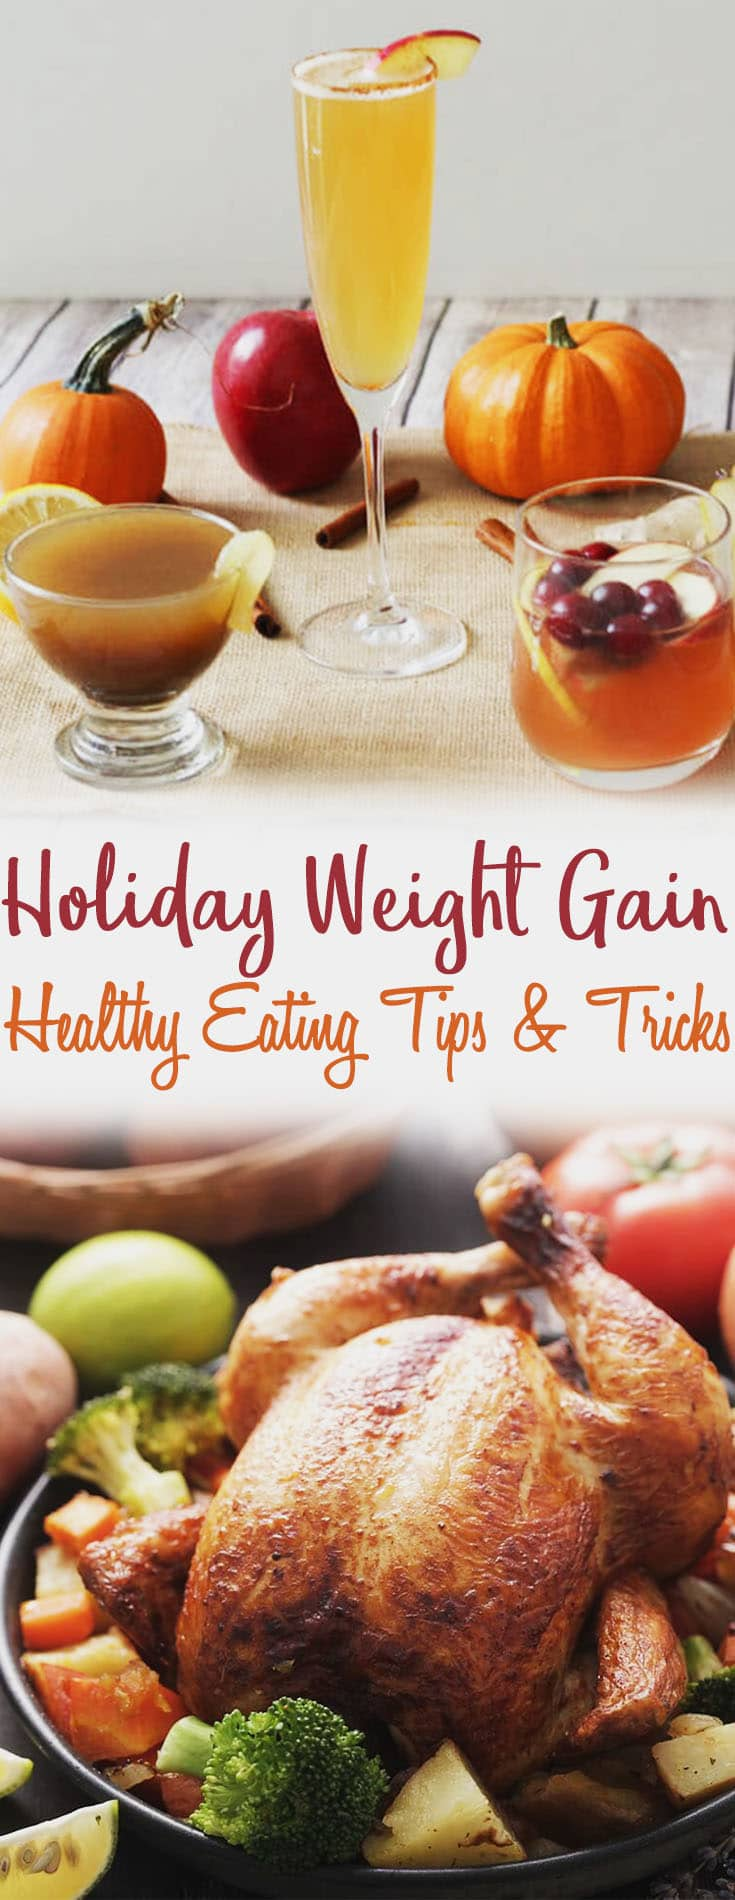 Holiday Weight Gain Healthy Eating Weight Loss Mistakes Tips